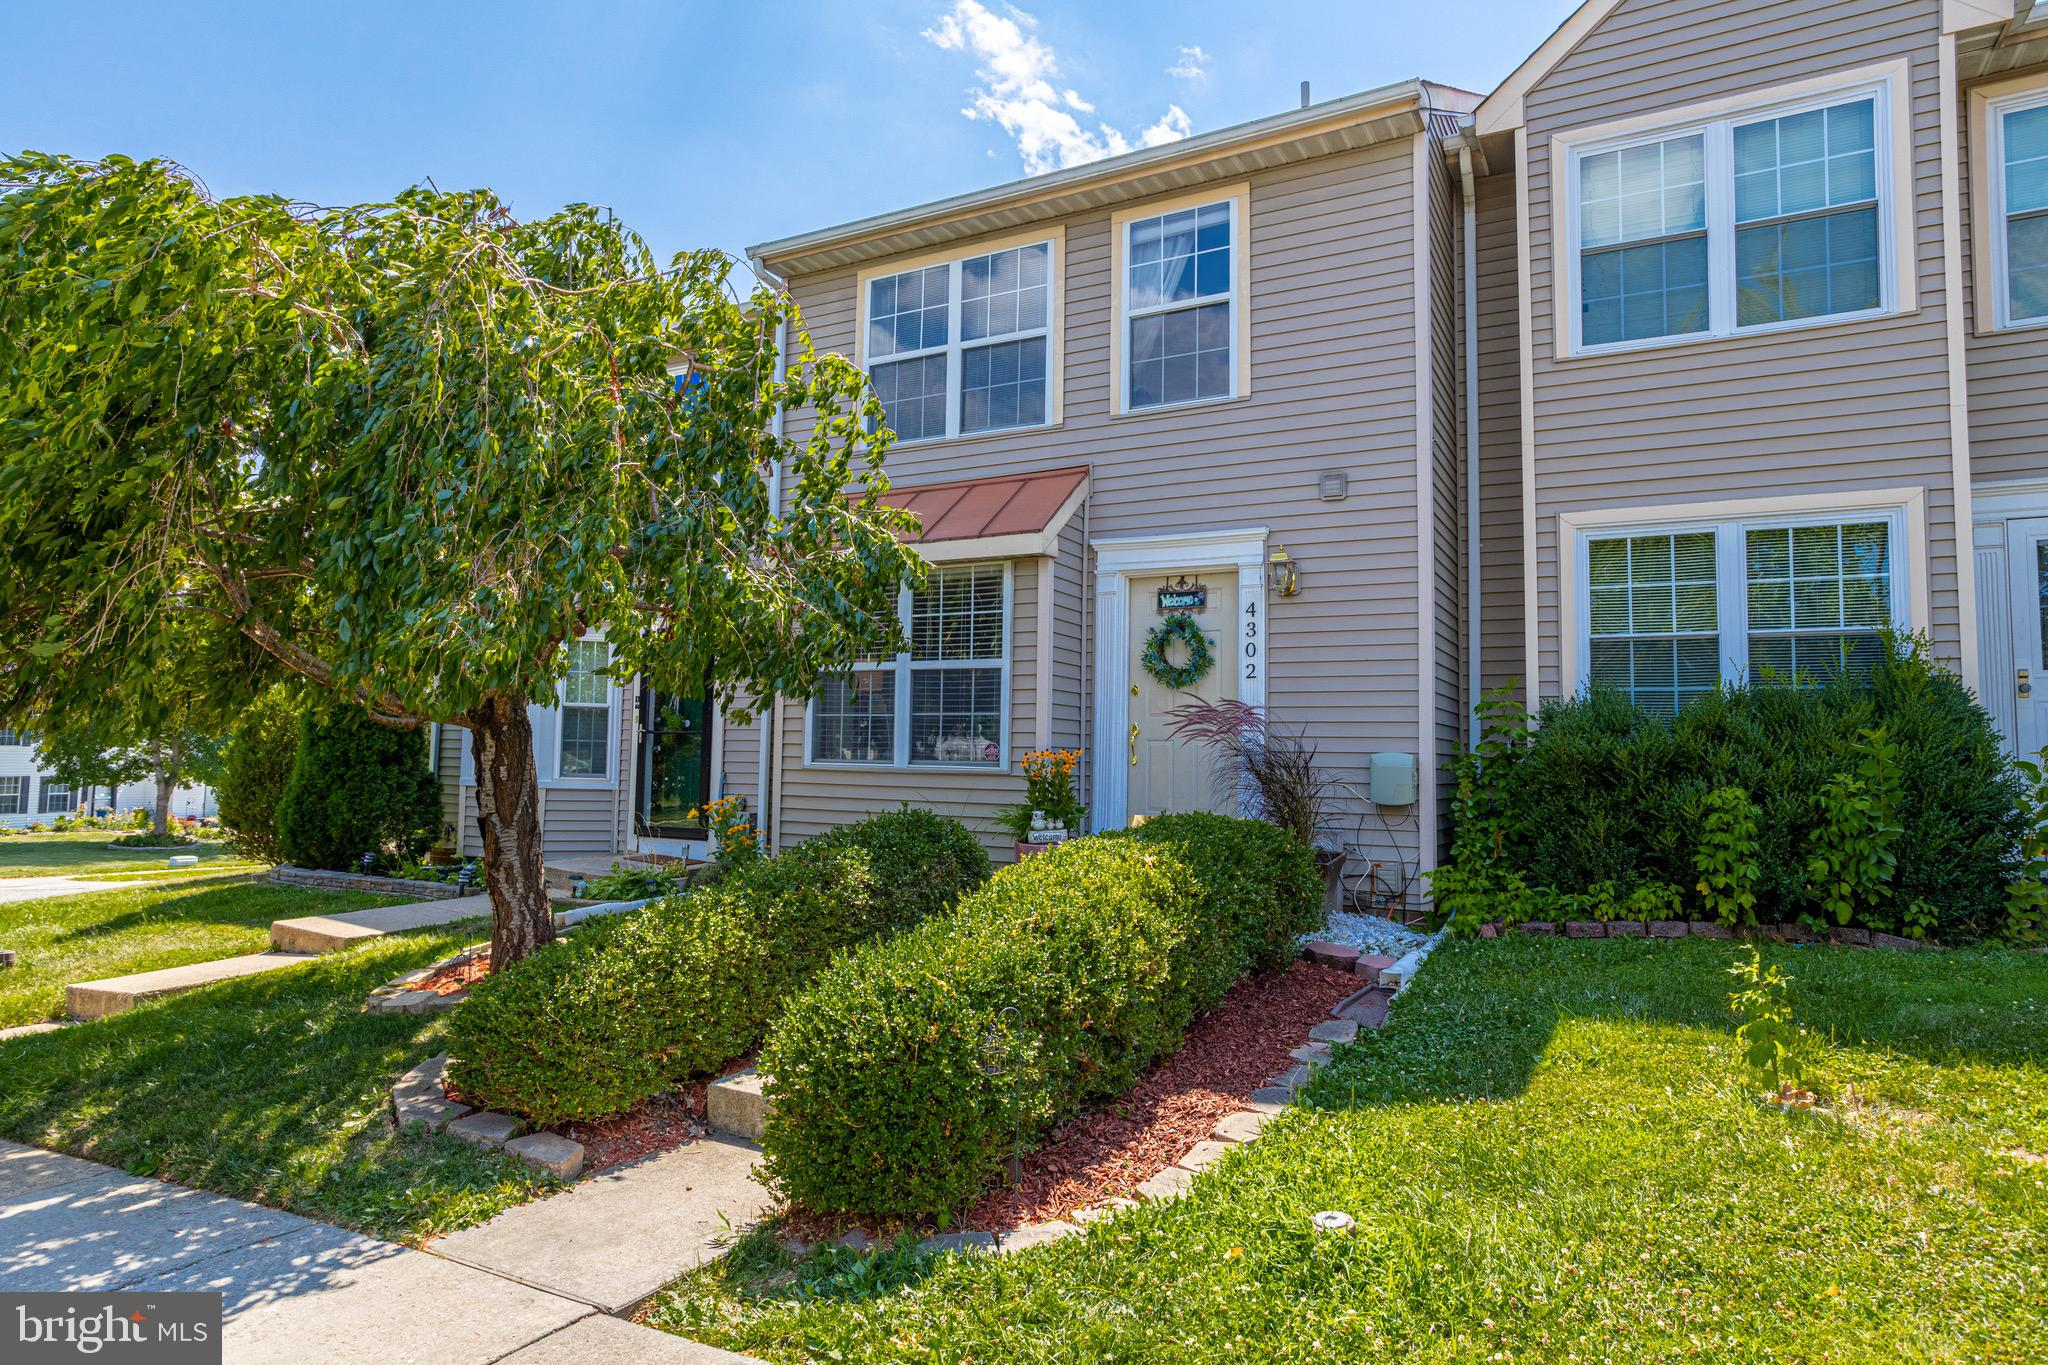 Welcome to this well manicured, fully updated 3 bedroom, 2.5 bath townhouse in Belcamp.  Enter into